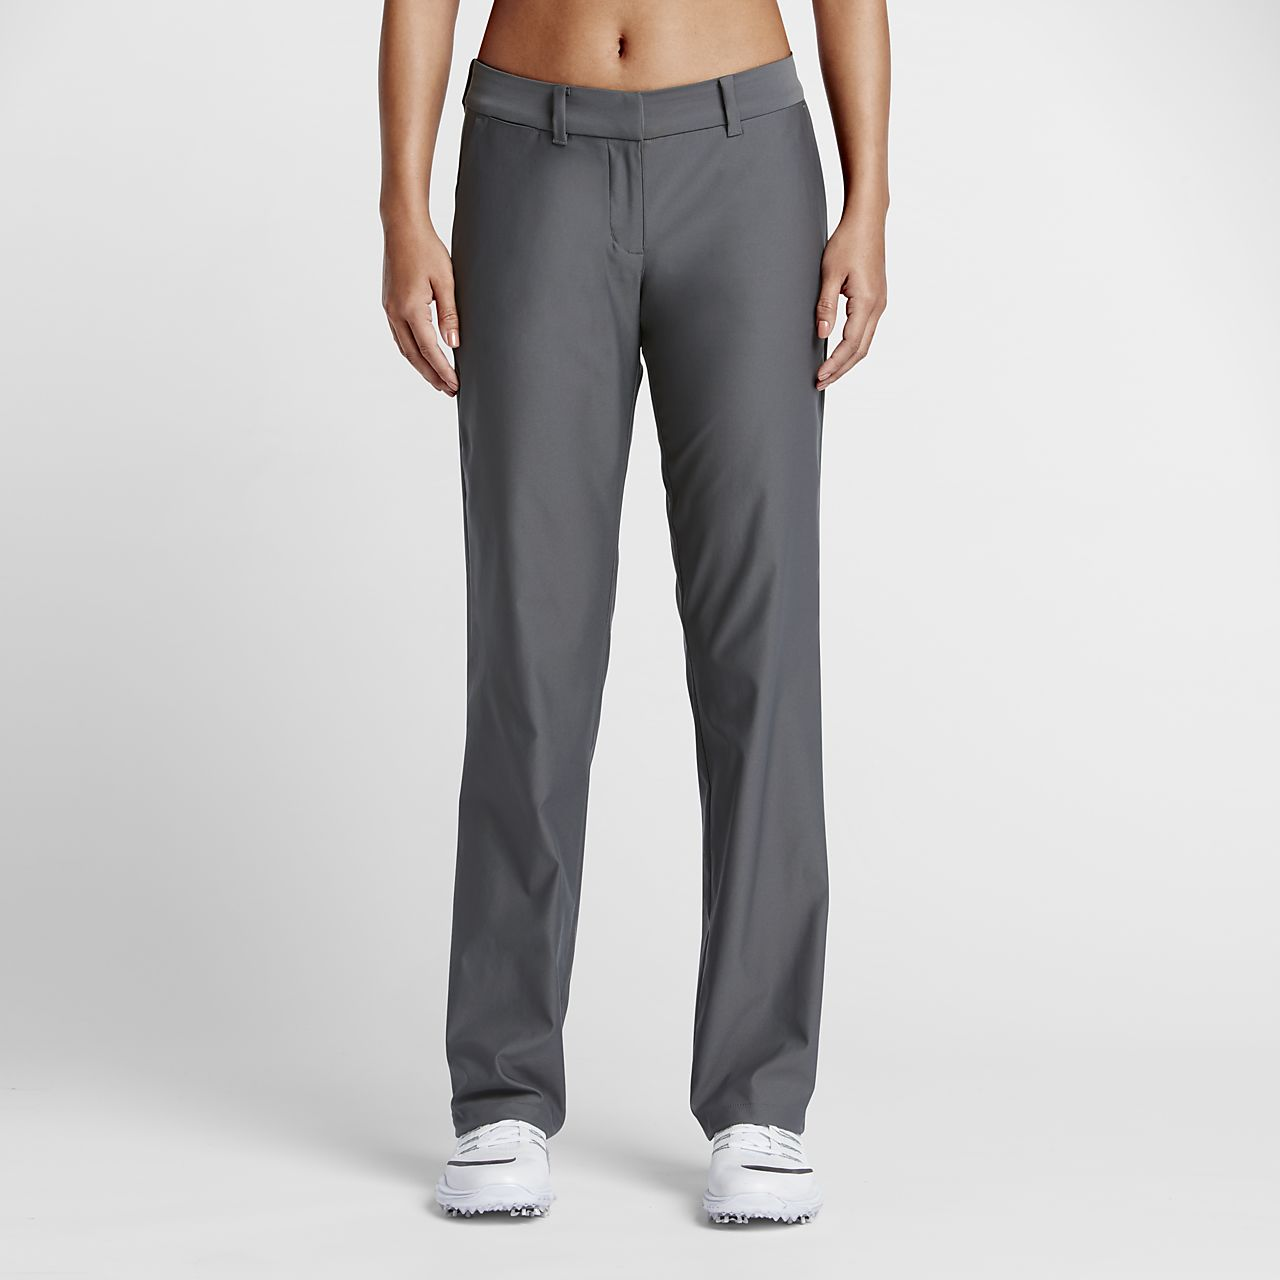 Nike golf pants womens